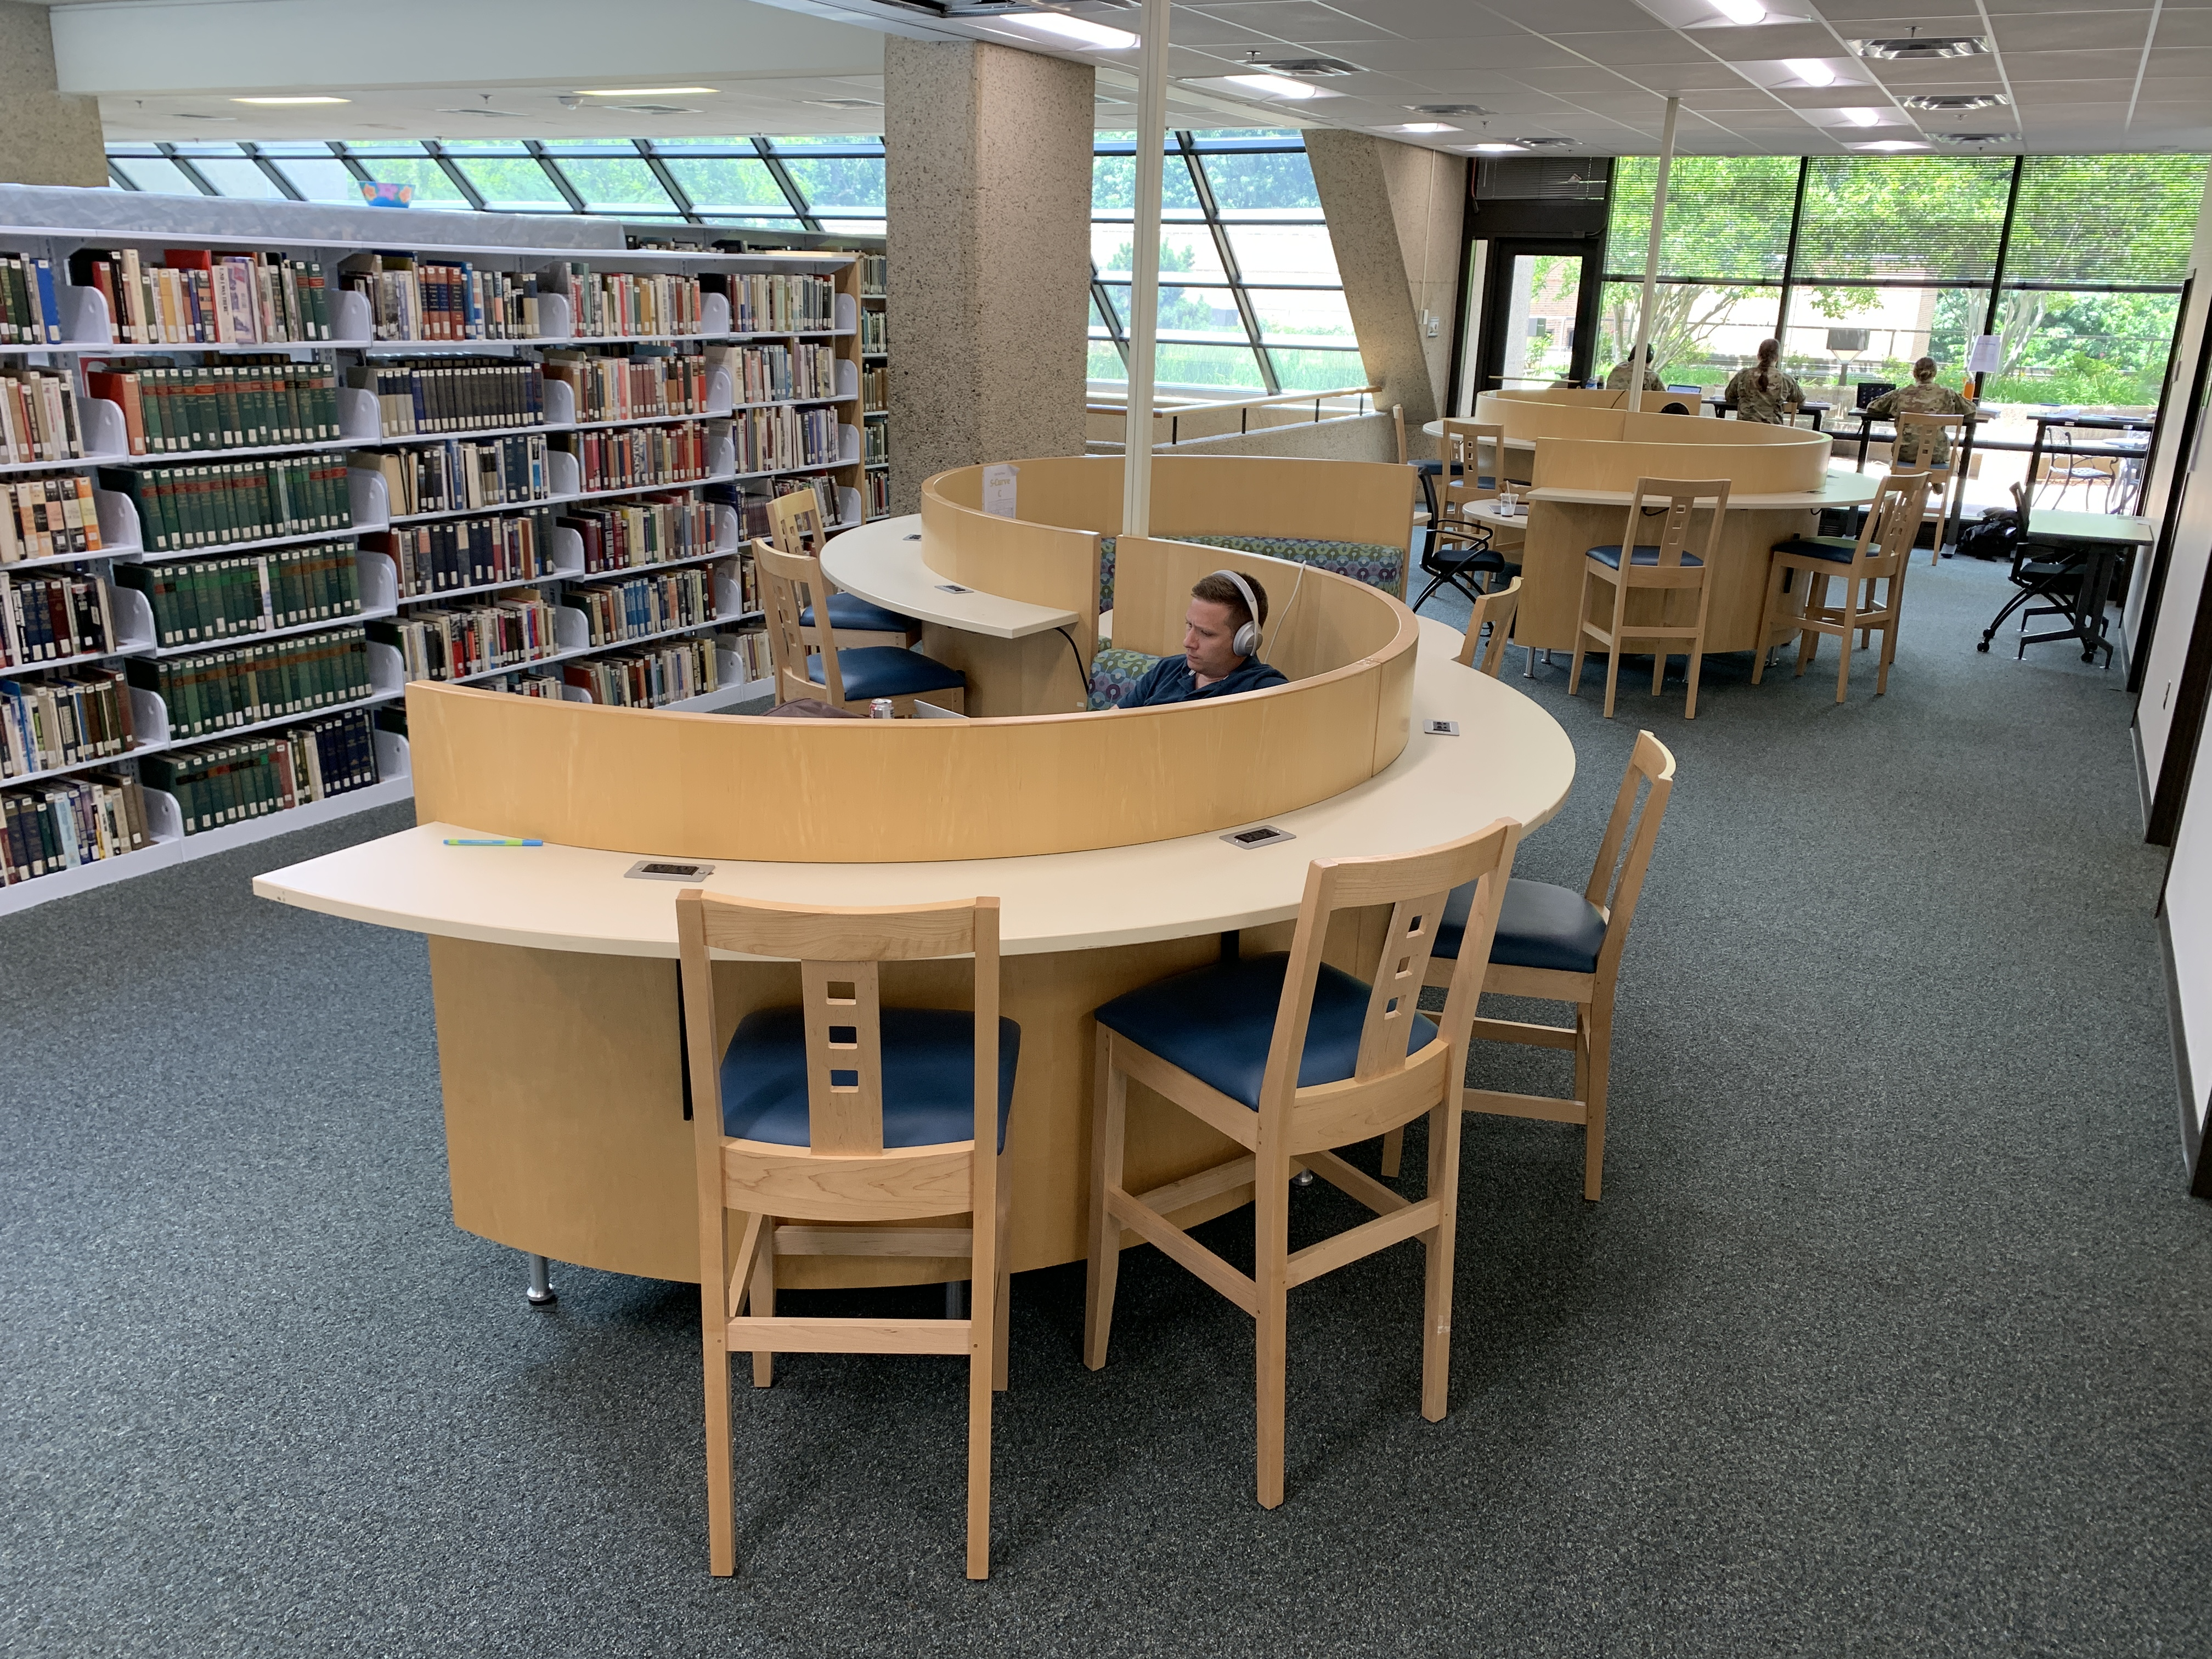 A picture of a couch and desk combination for group and individual study on the second floor.